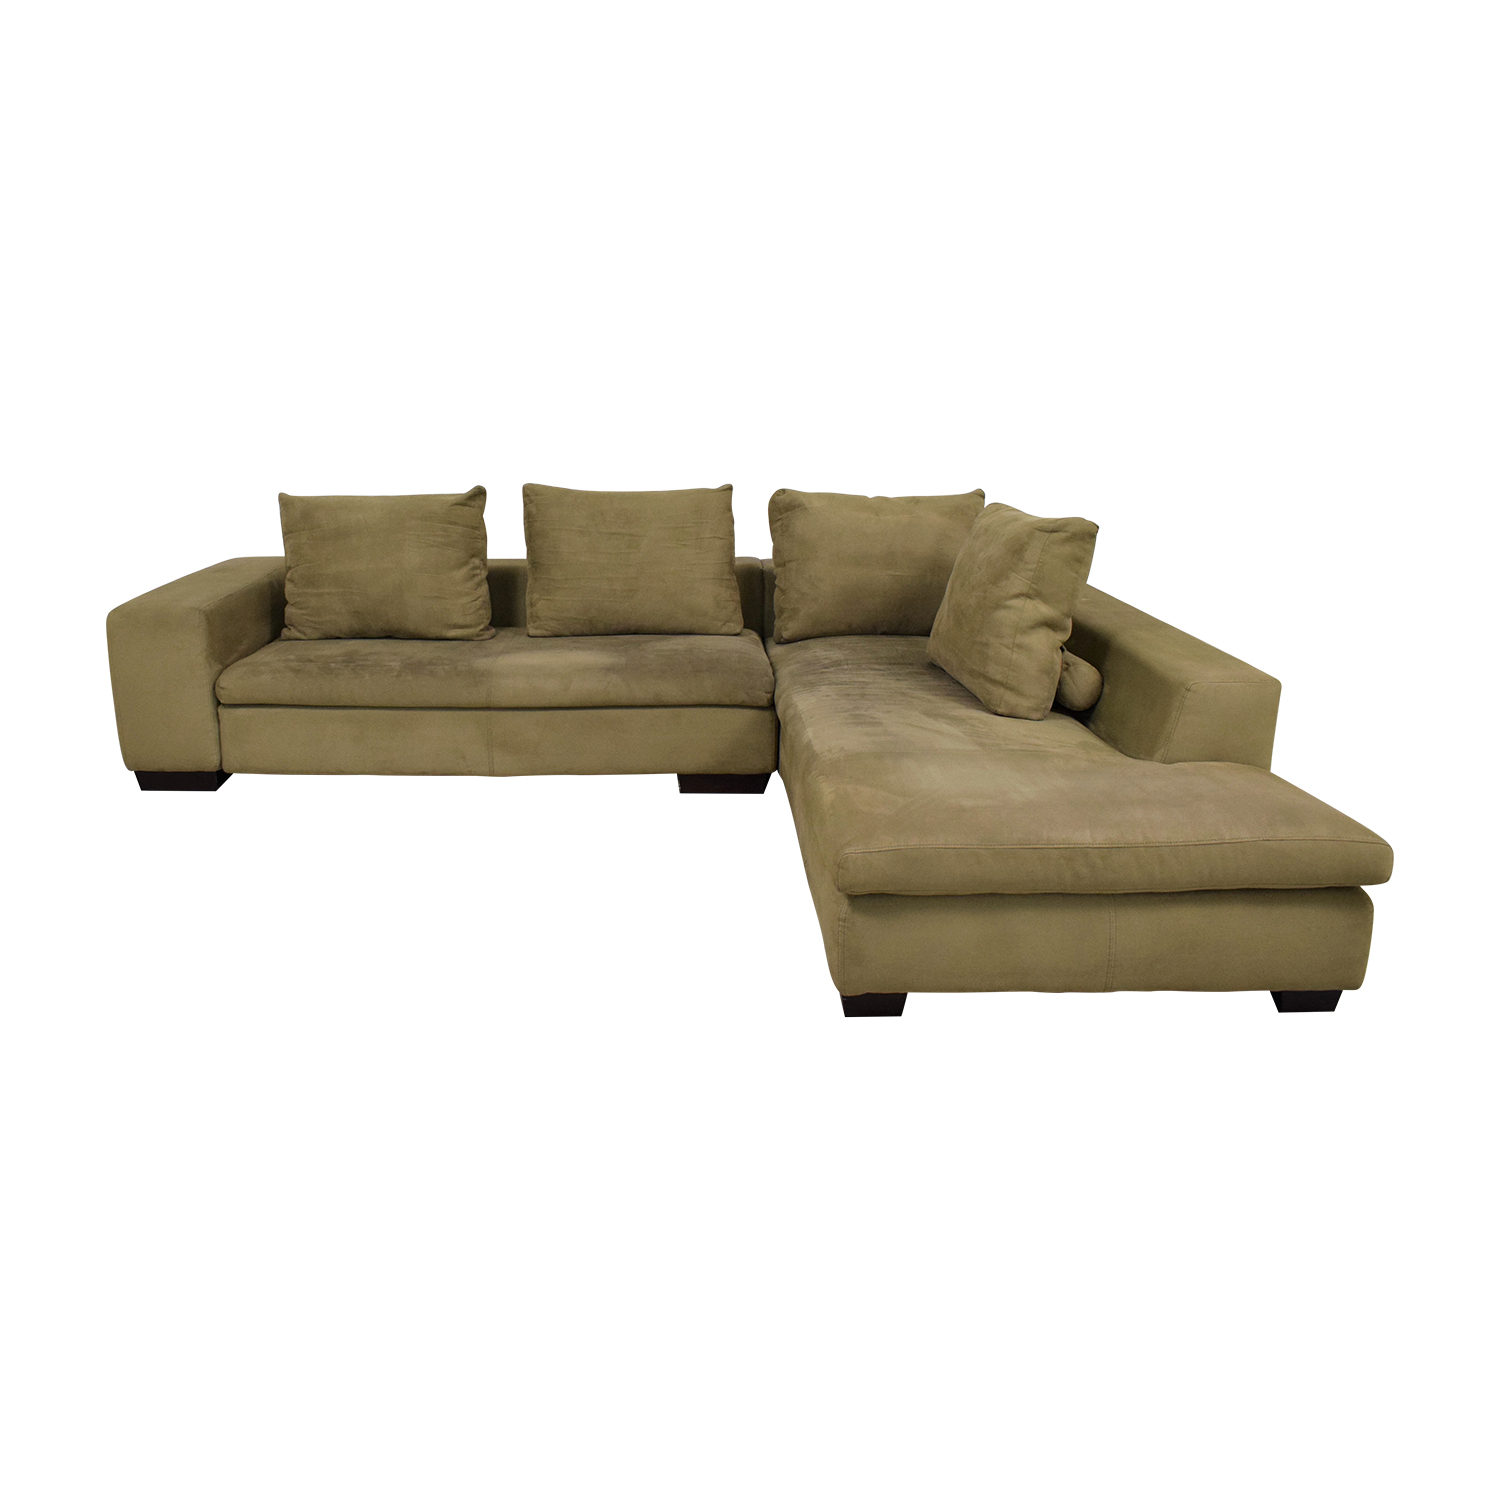 ABC Carpet & Home ABC Carpet & Home Sectional discount